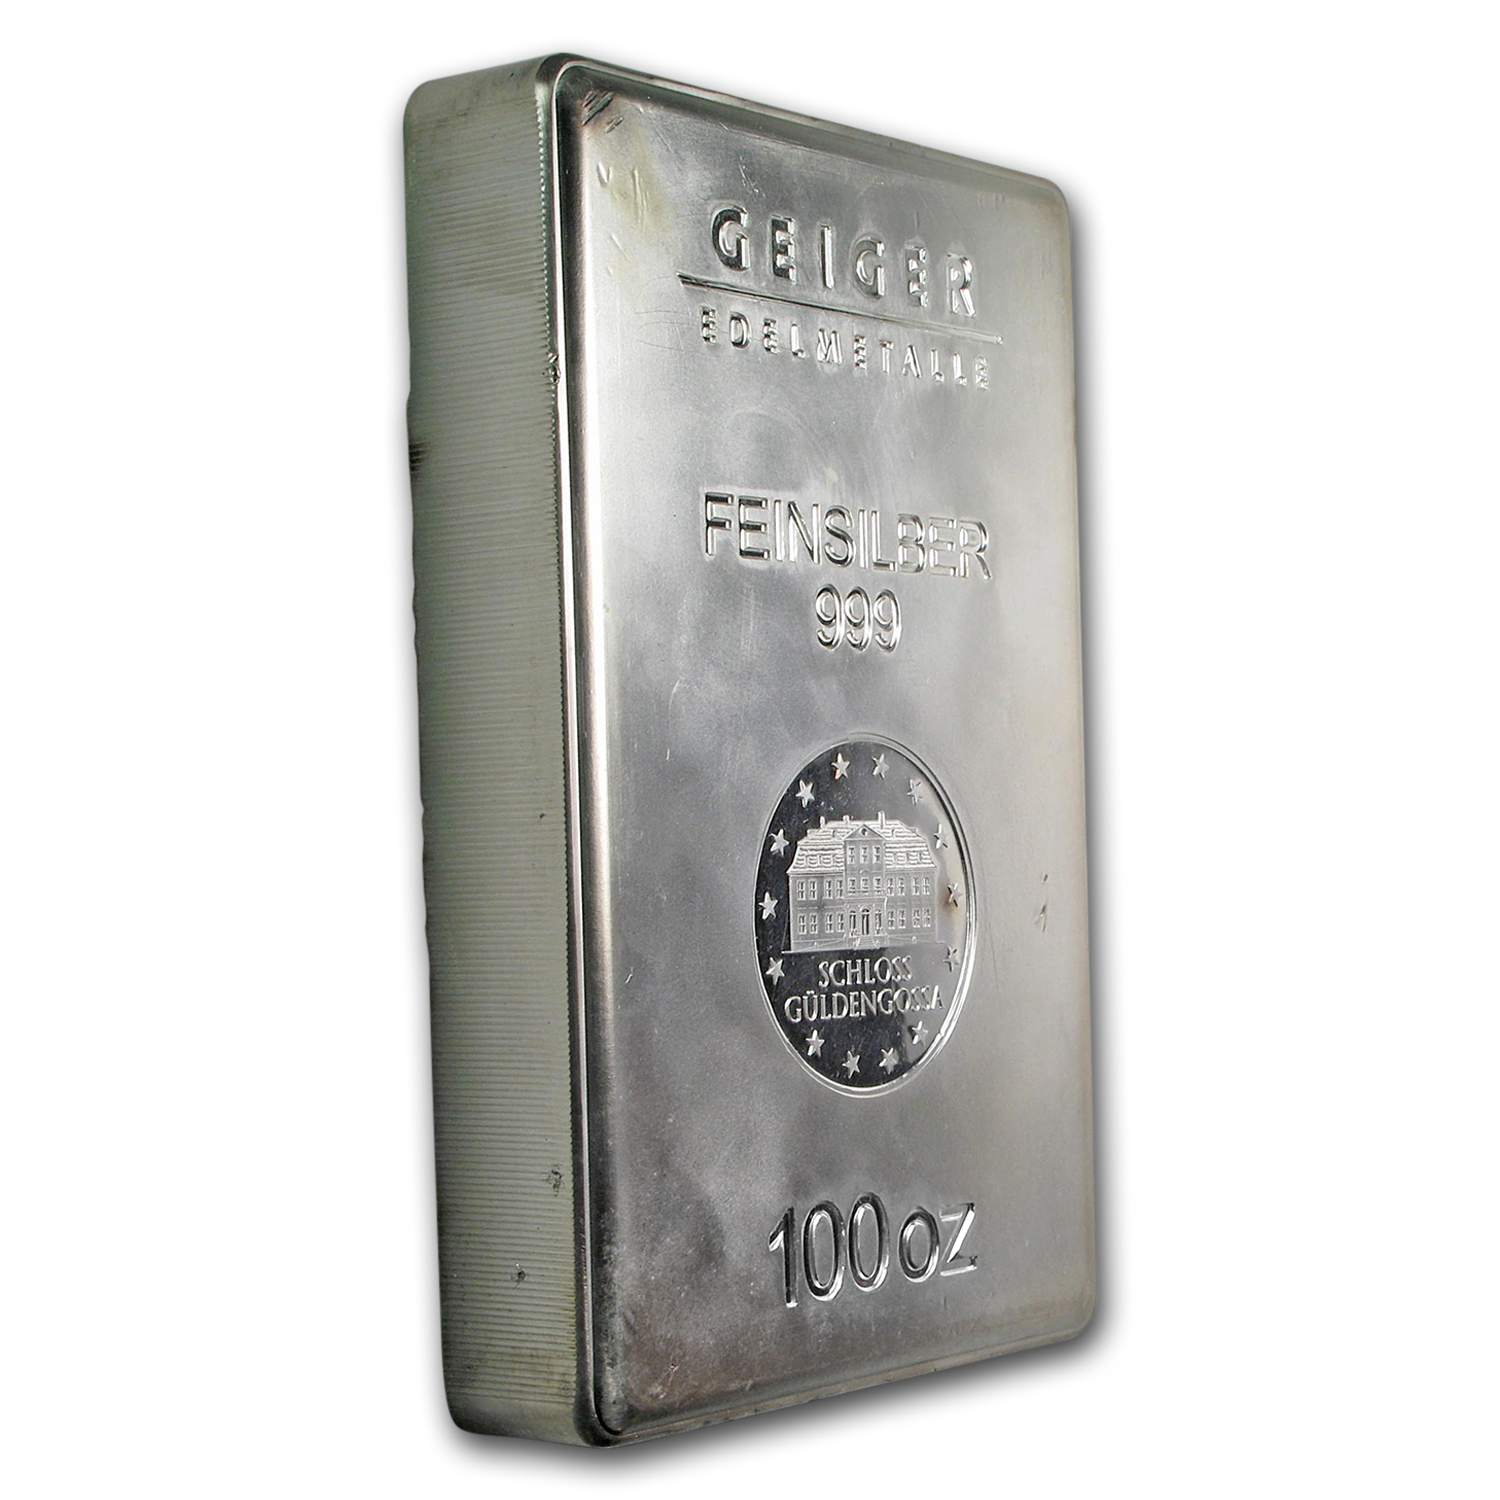 100 oz Silver Bar - Geiger (Security Line Series/Scruffy)